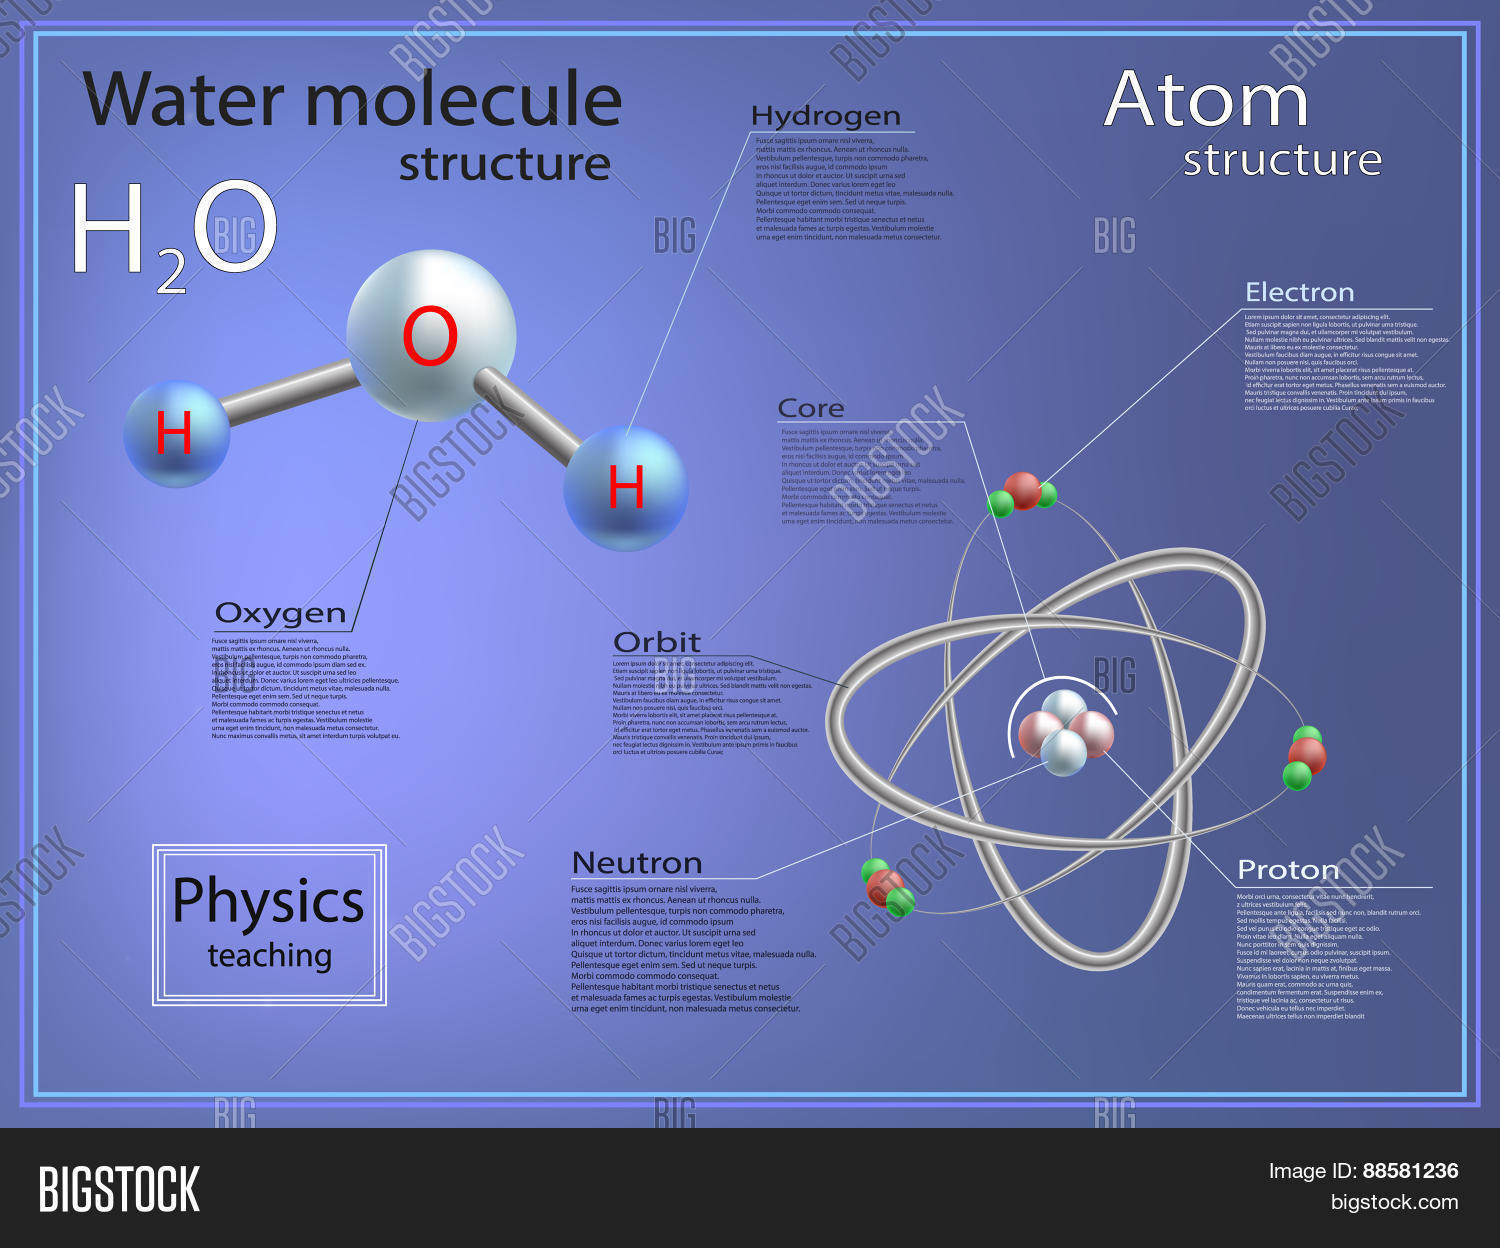 water and its structure chem1 - HD 5555×4179